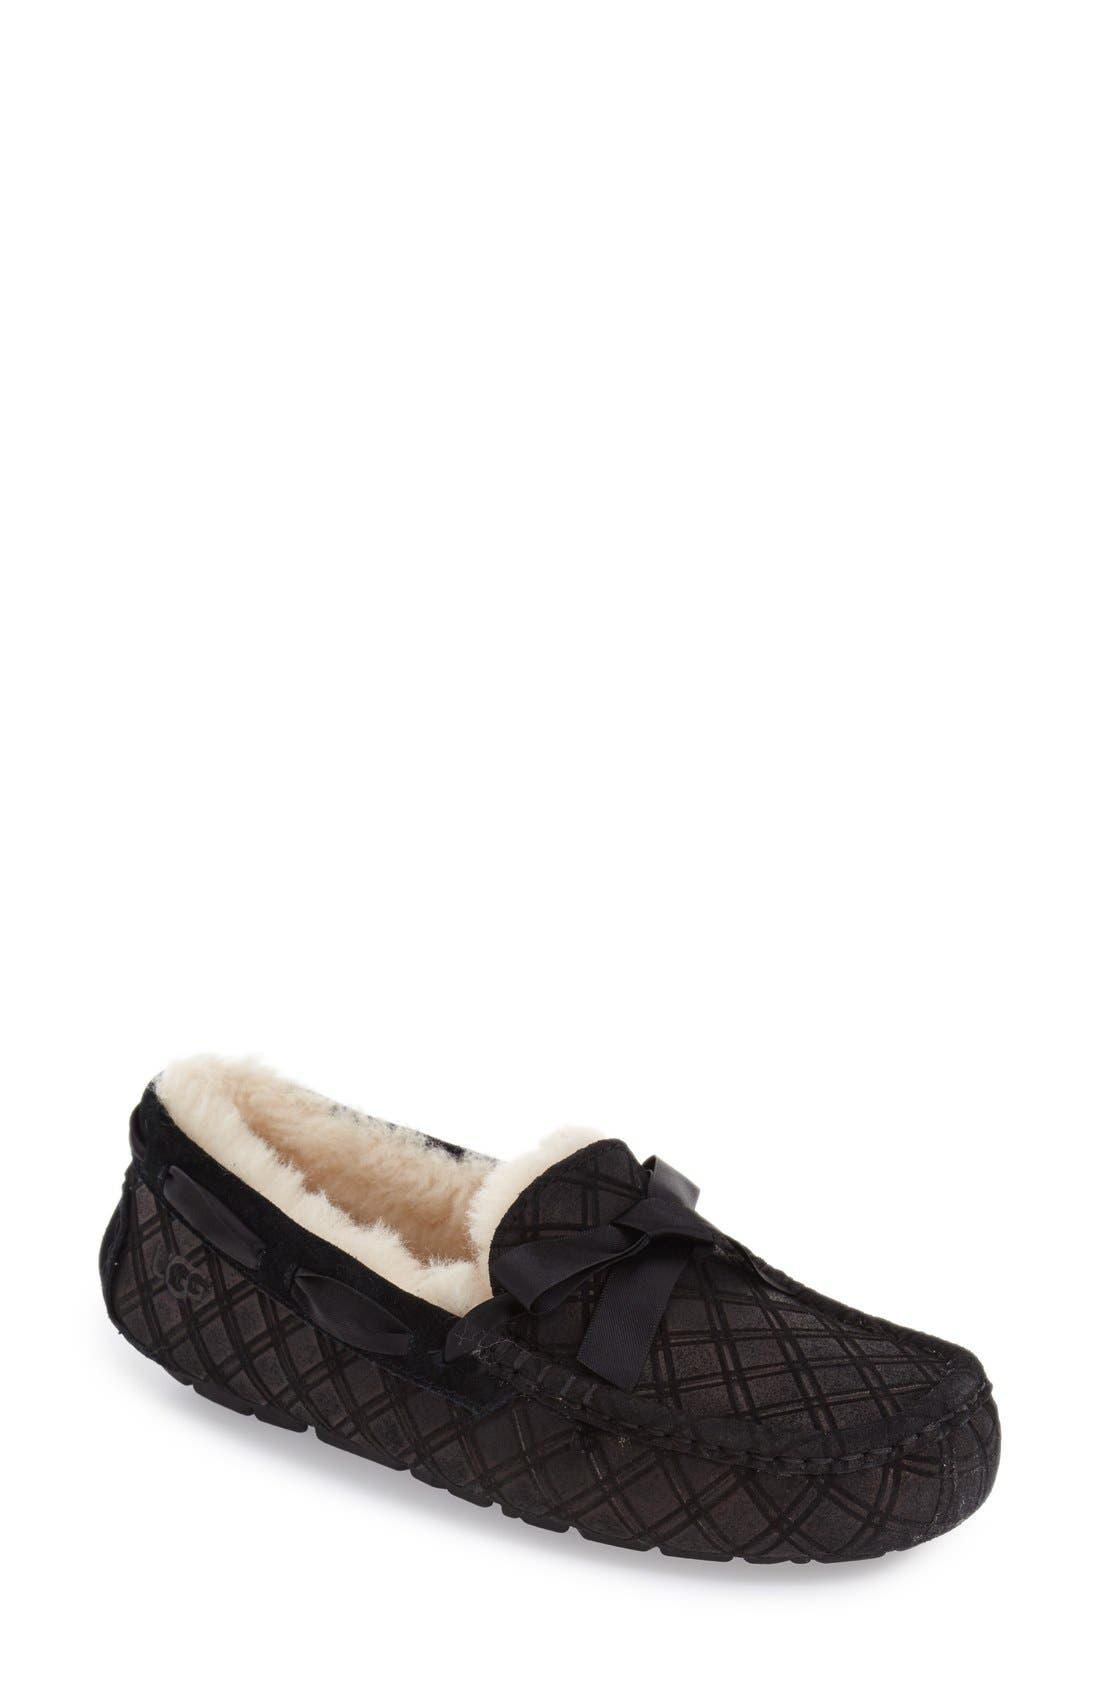 Alternate Image 1 Selected - UGG® Dakota Slipper (Women)